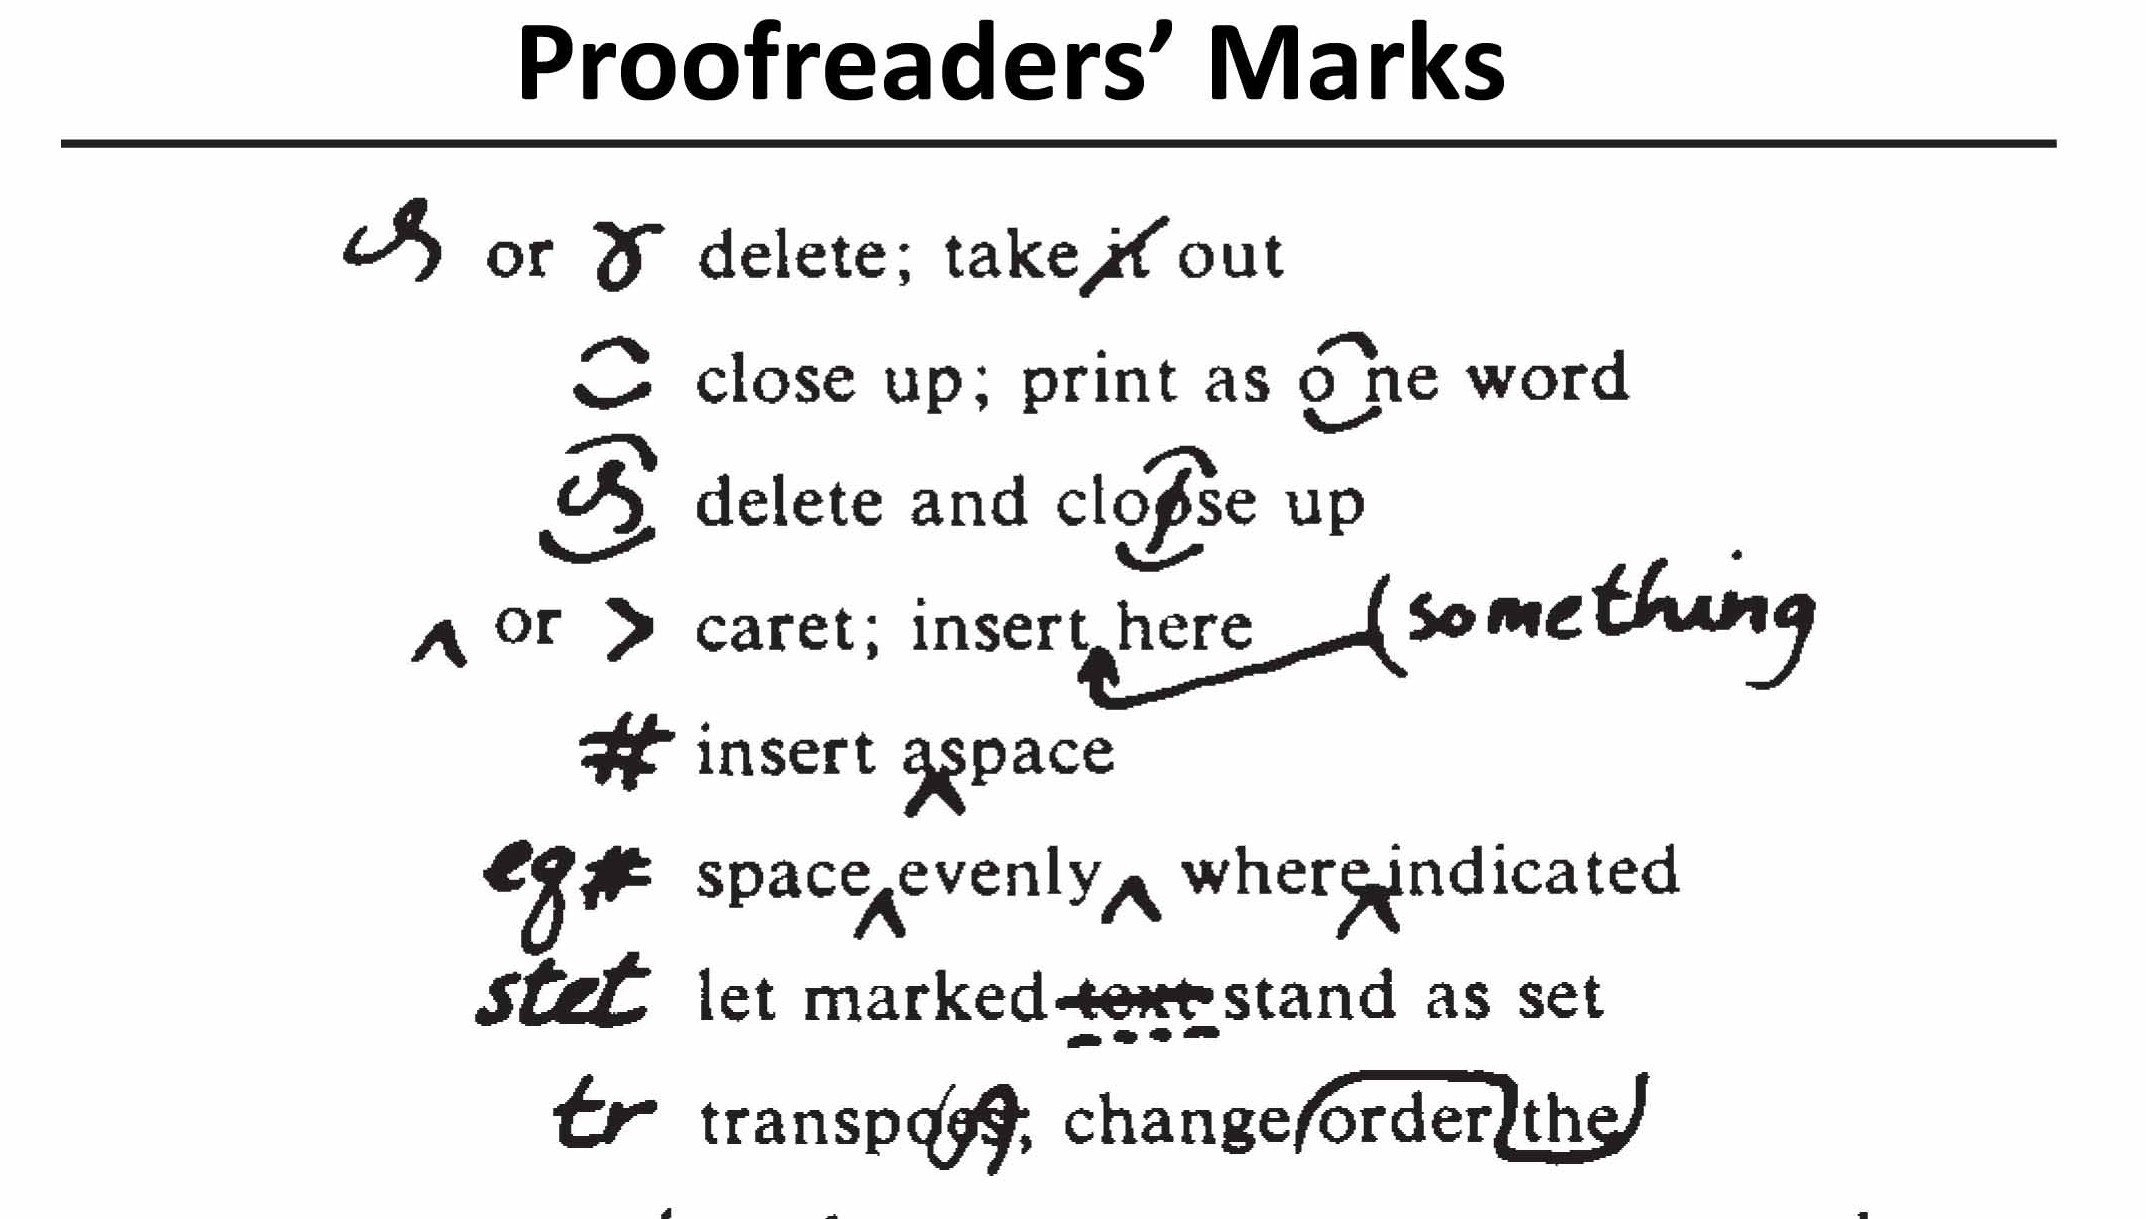 Proofreading and bsi mark ups network languages proofmarks biocorpaavc